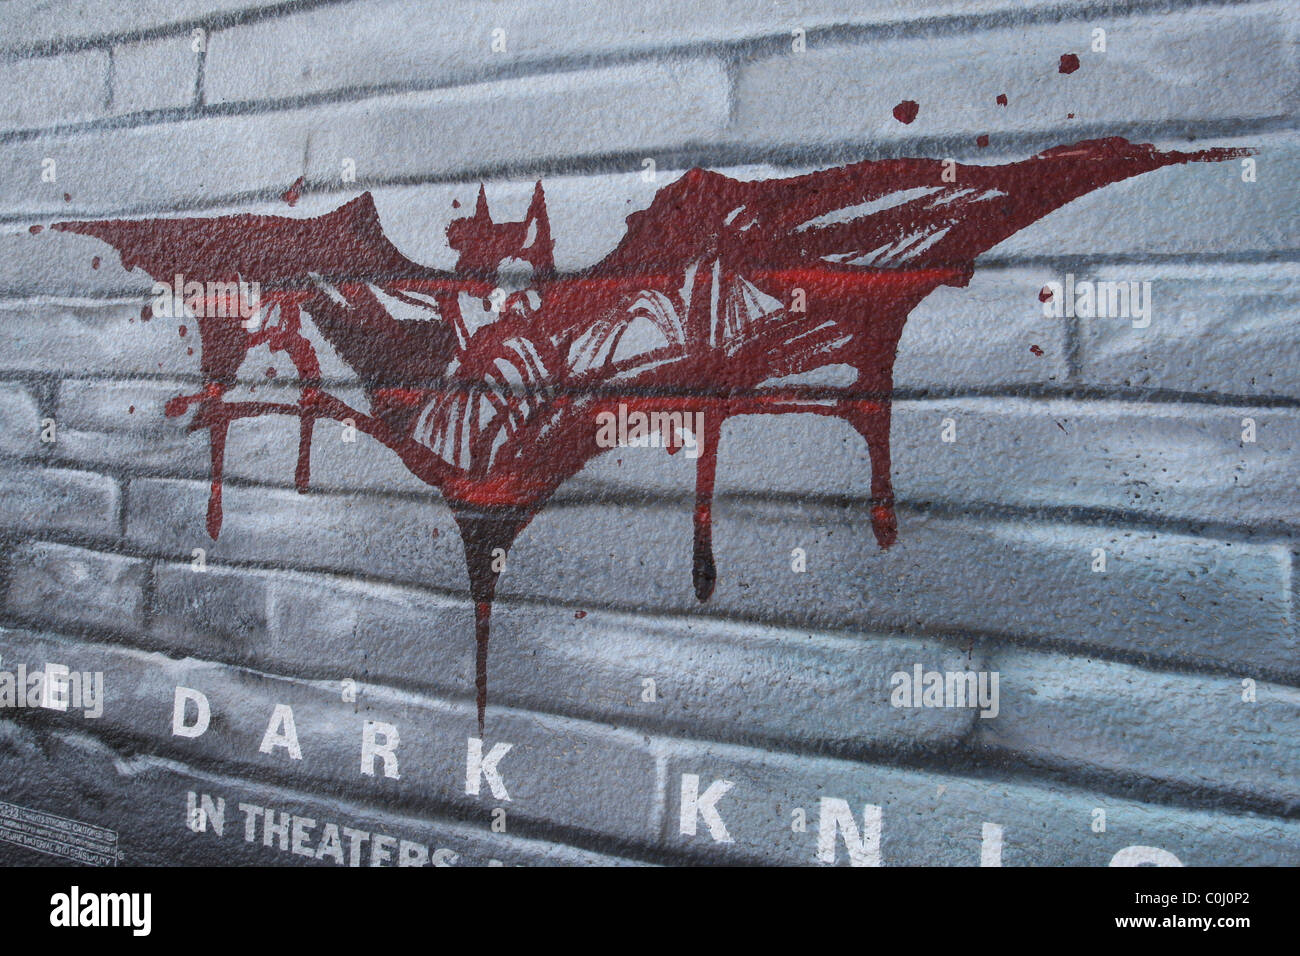 Graffiti Style Poster Promotion For The New Batman Movie The Dark Knight On Melrose Ave West Hollywood California